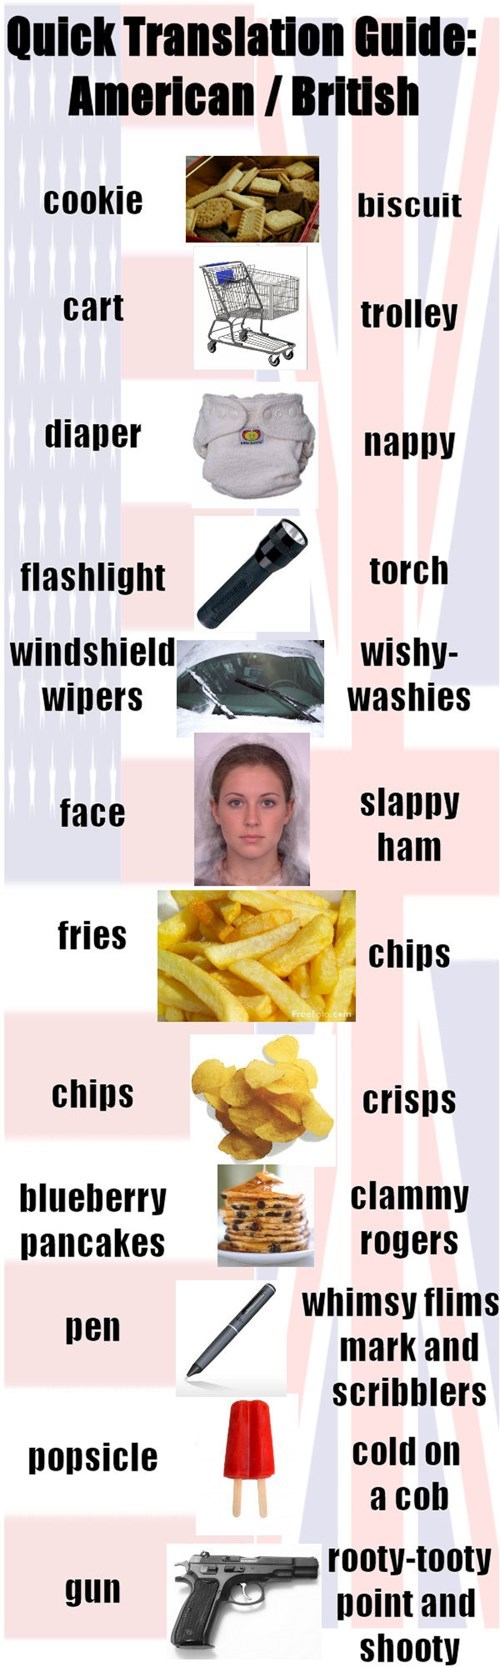 A Convenient American English to British English Guide